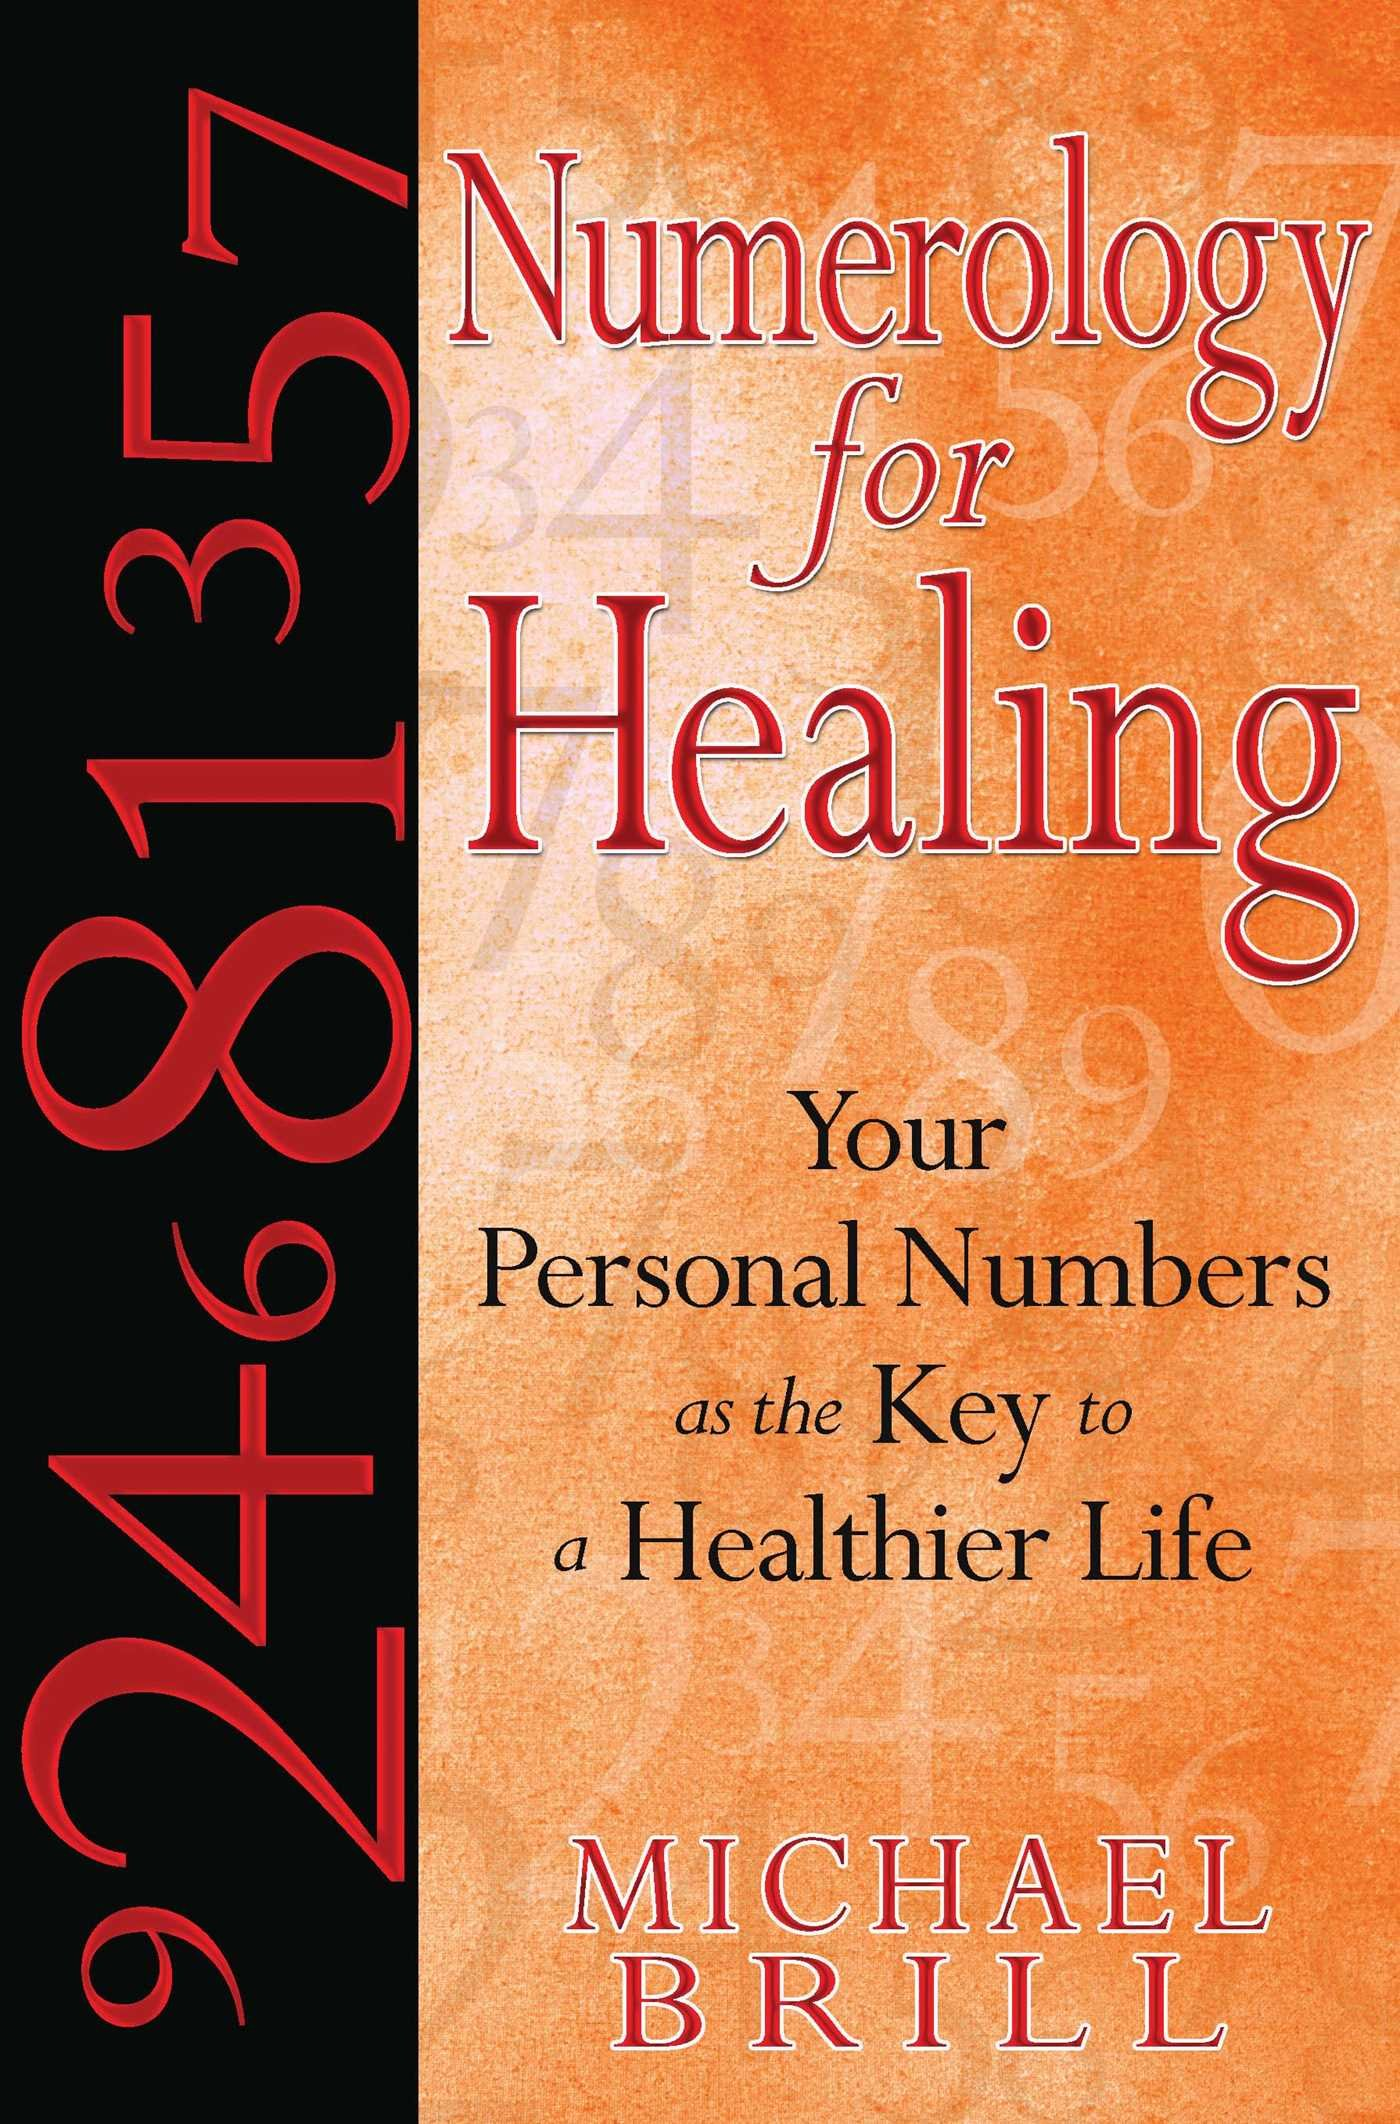 Download Numerology for Healing: Your Personal Numbers as the Key to a Healthier Life ebook